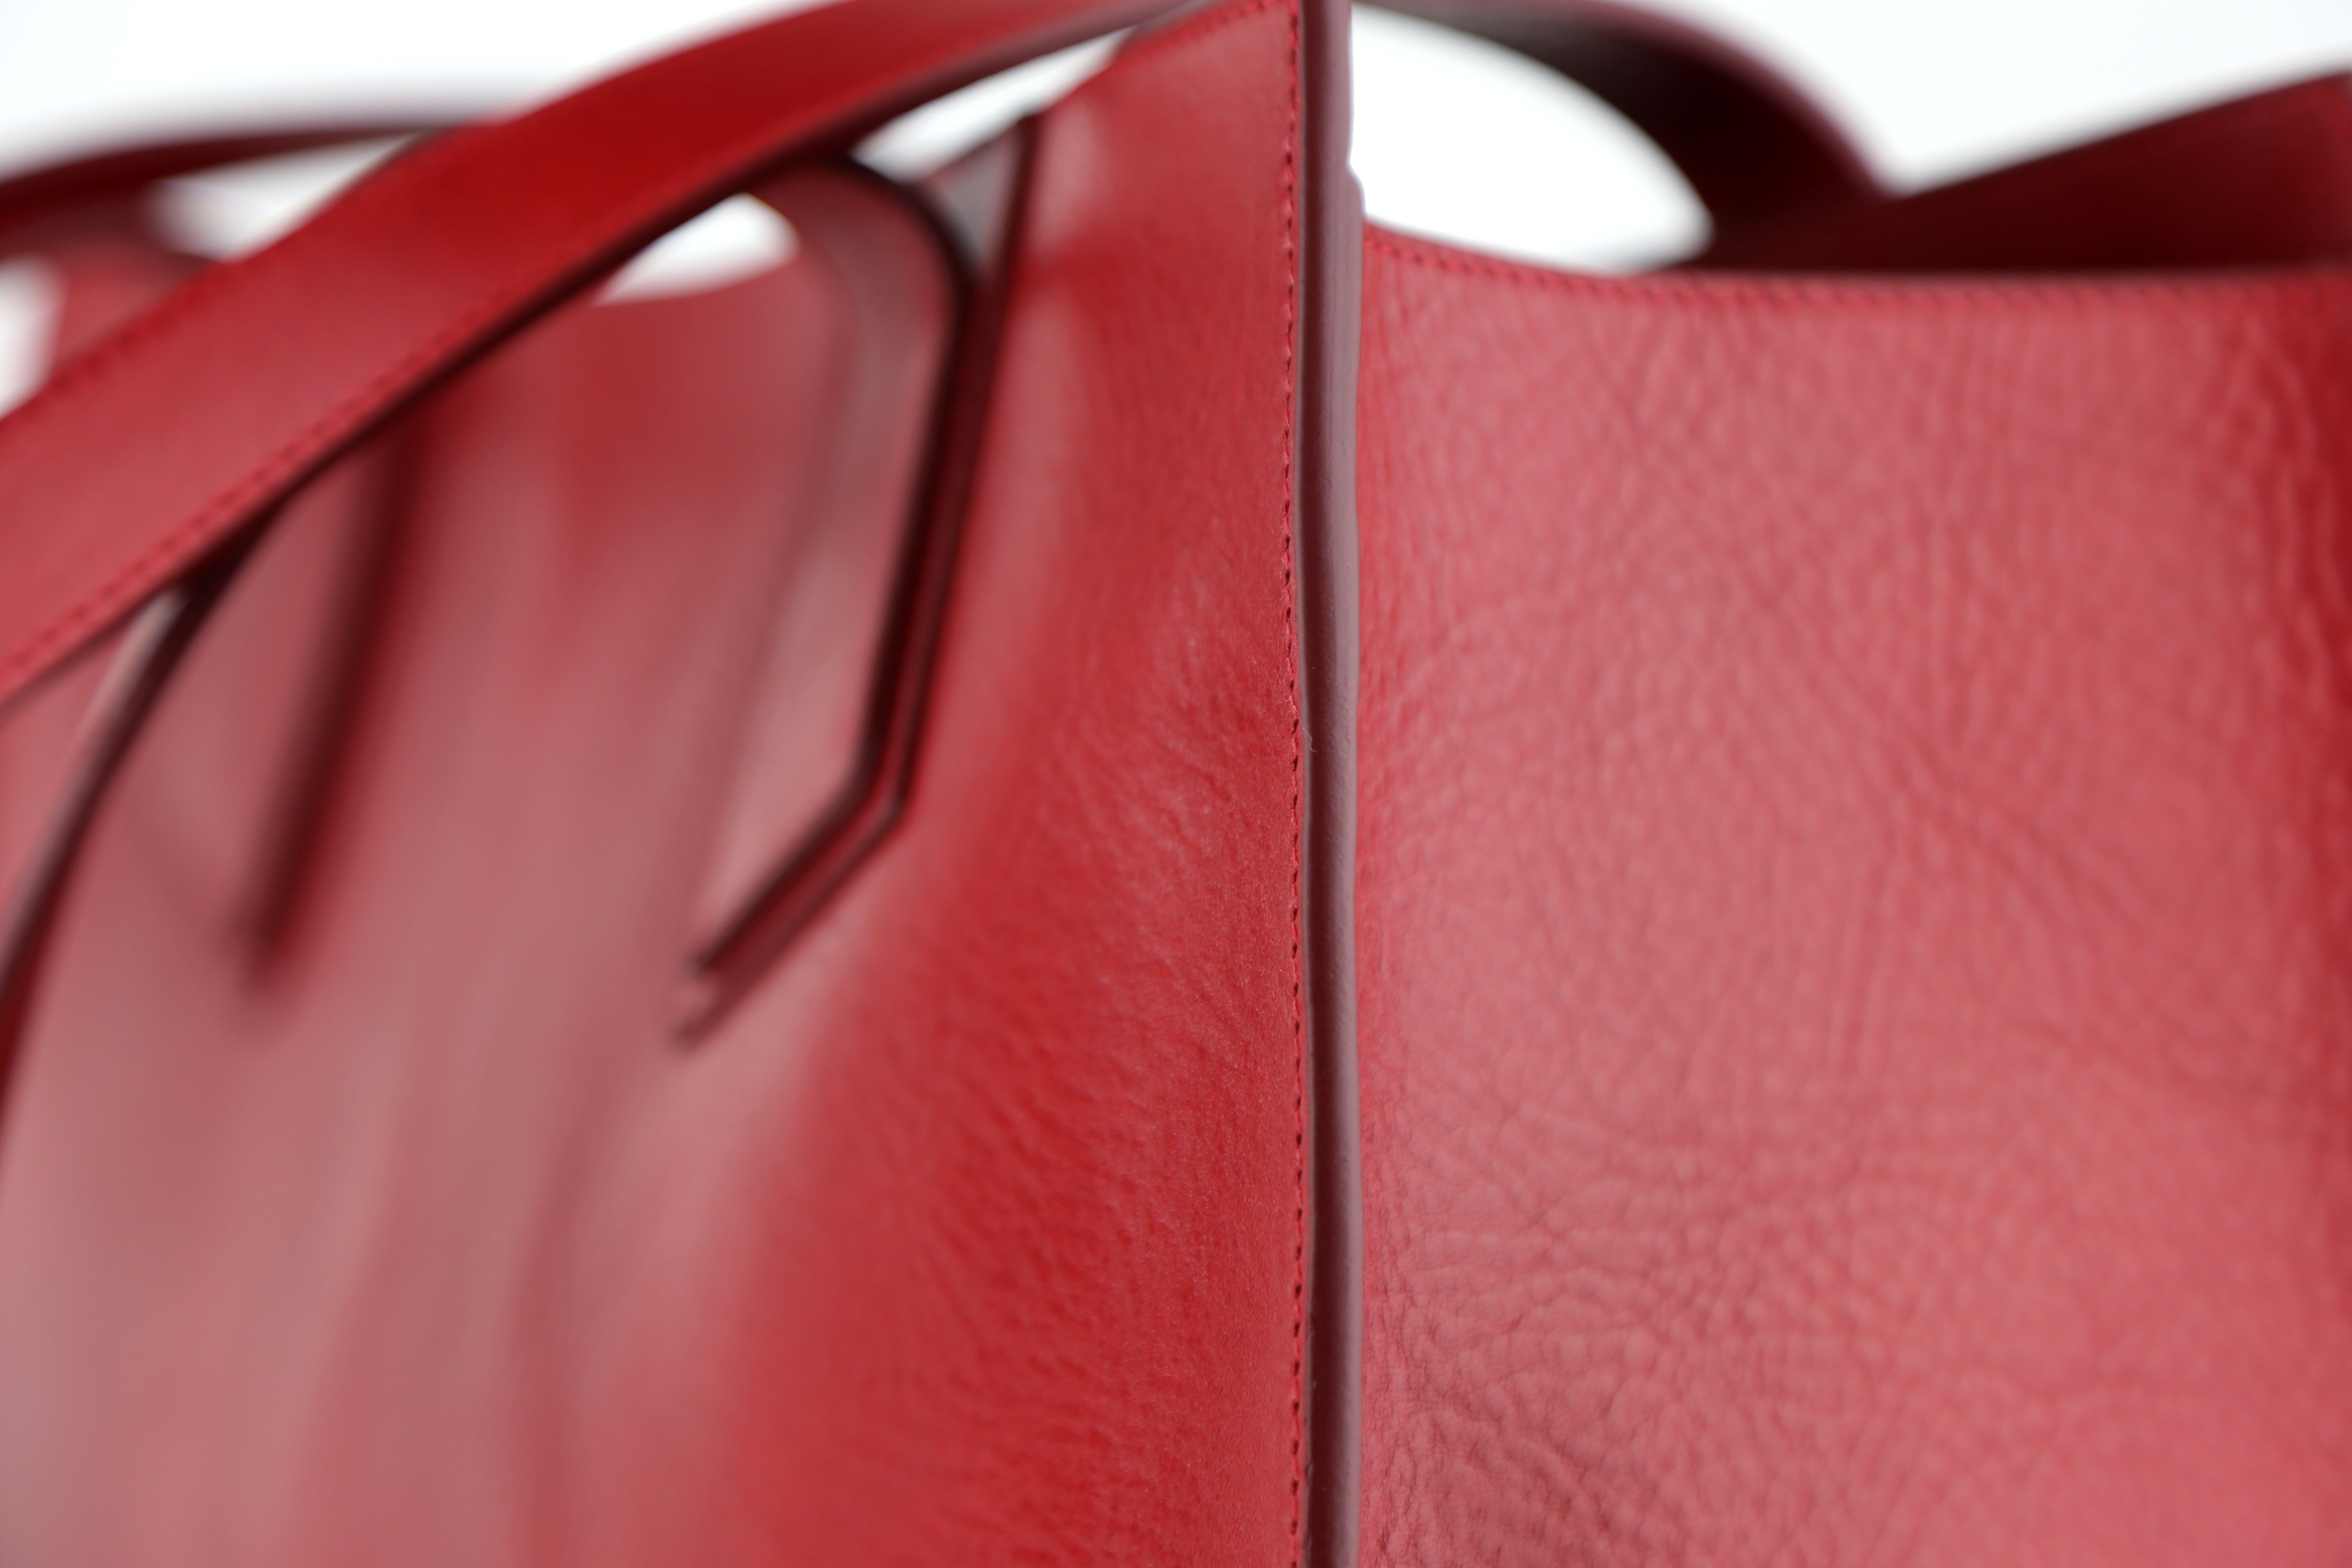 Handmade luxury leather goods, made in America by master ...